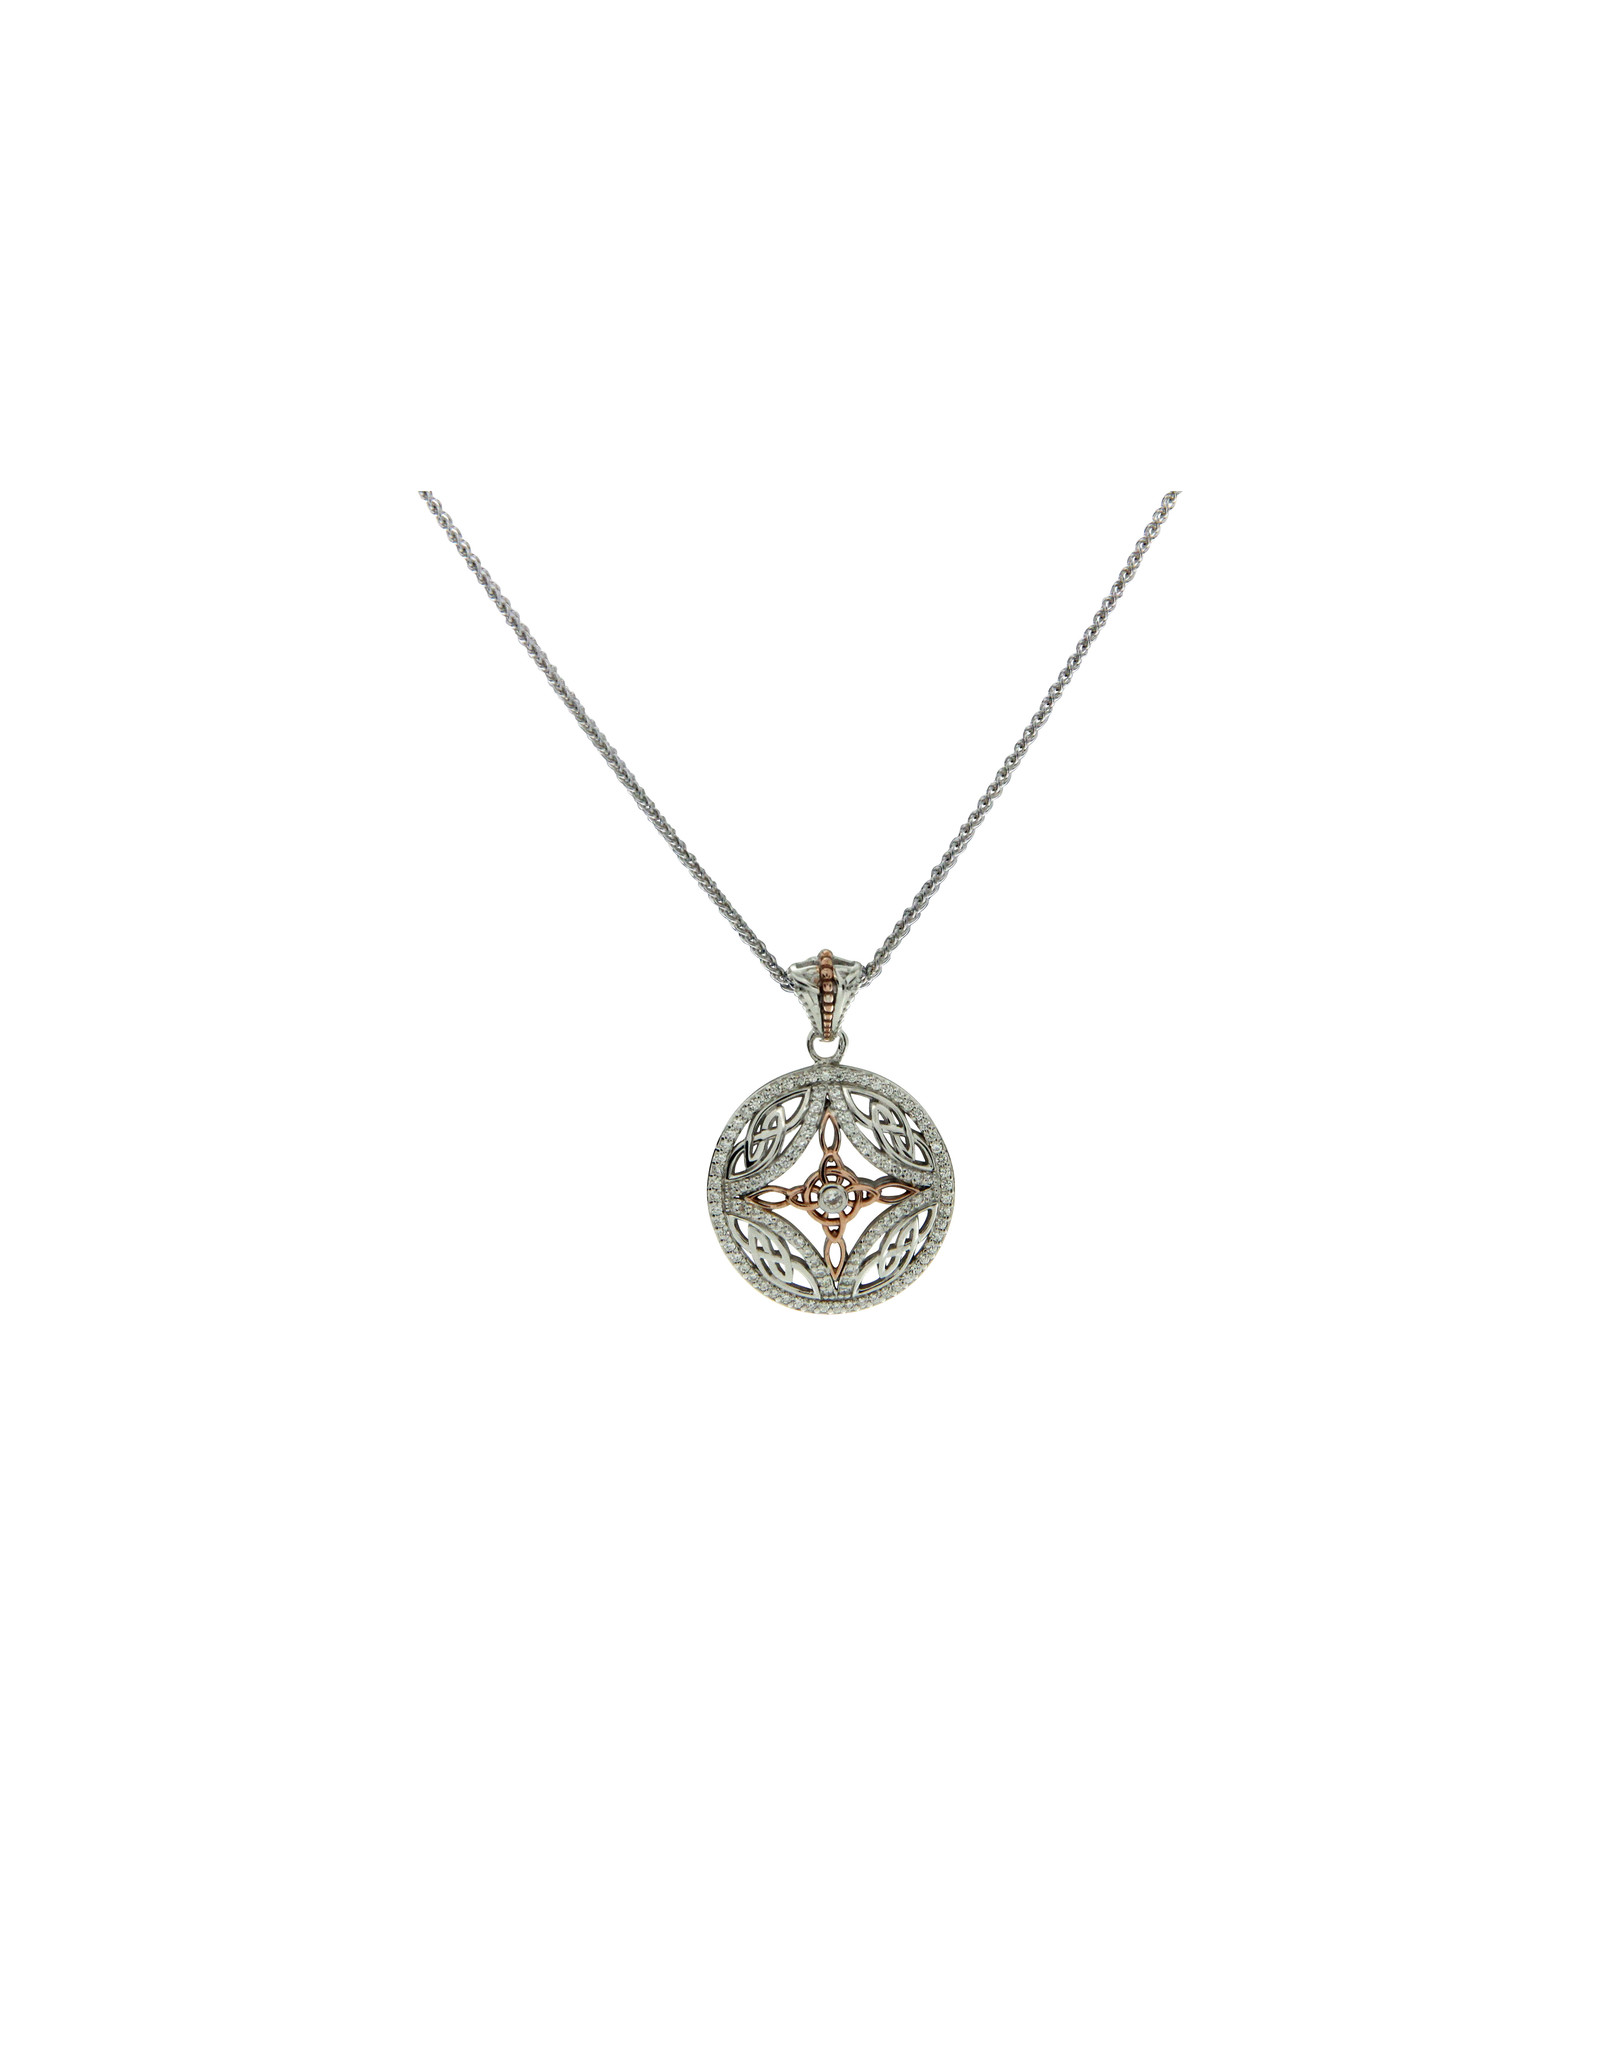 Keith Jack S/S Cross with 10k Rose and Cubic Zirconia